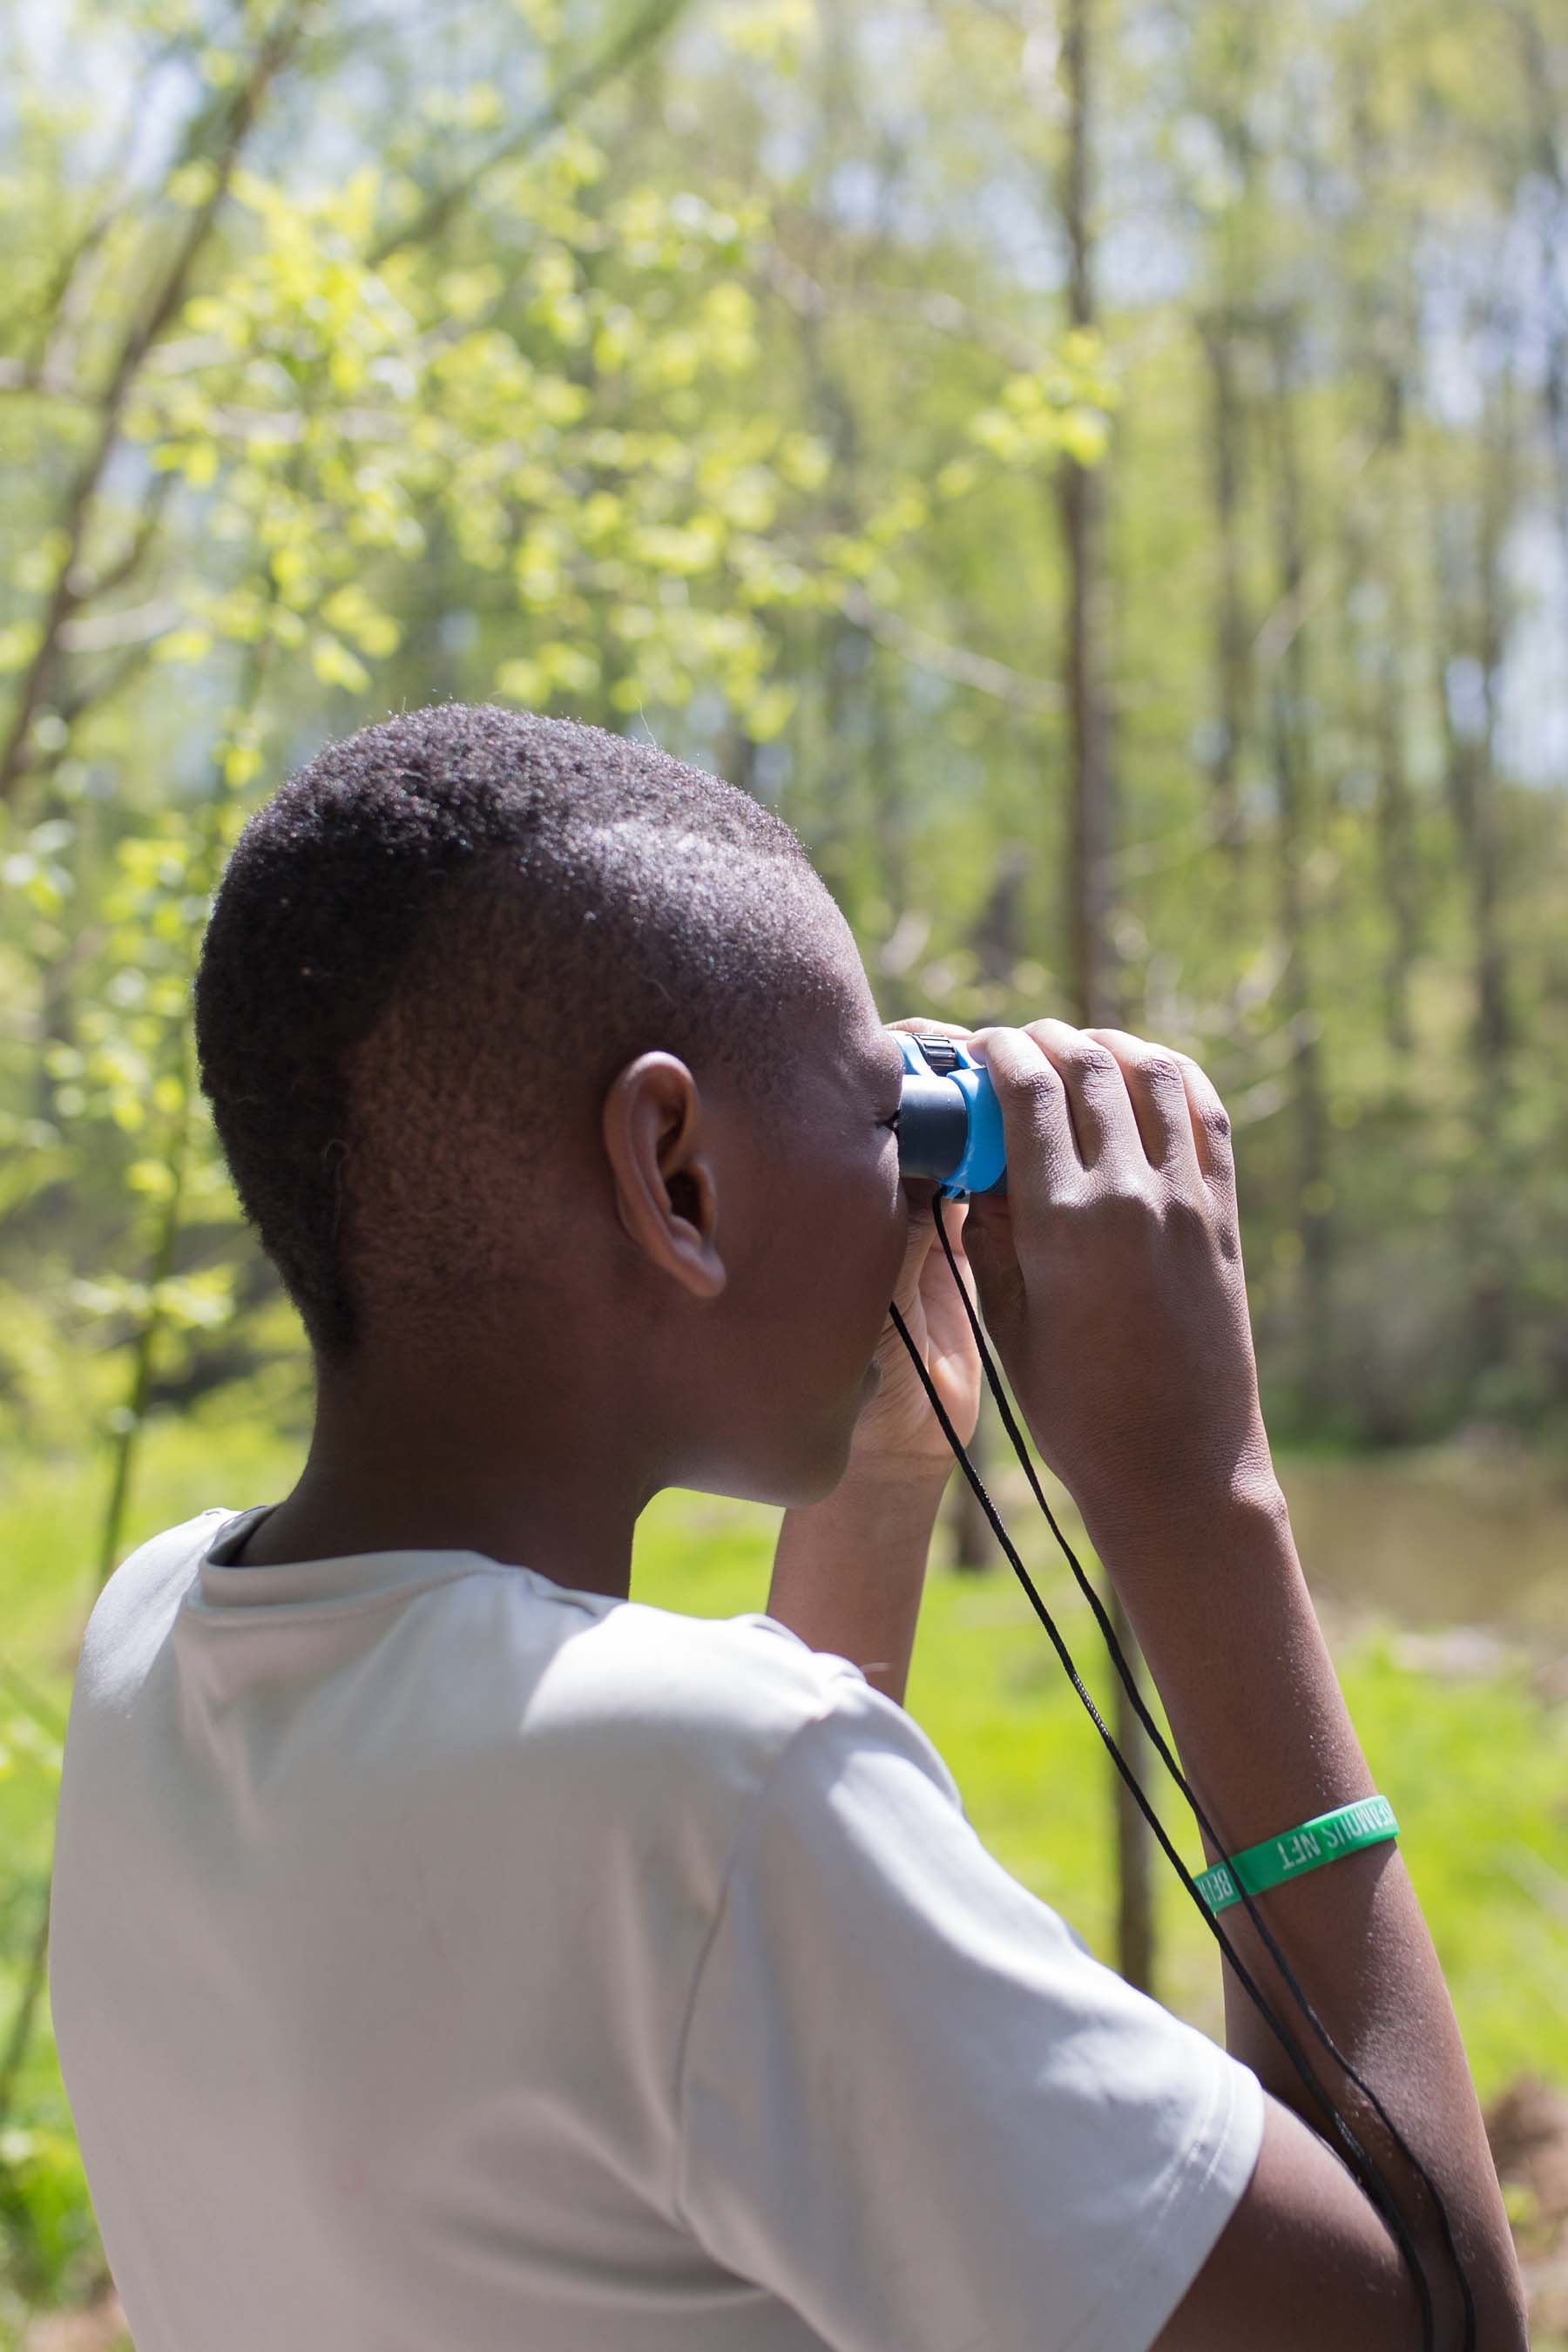 A boy with a faux hawk looks through binoculars. he wears a white t-shirt and is surrounded by green vegetation and trees. He is looking to the right and away from the camera.